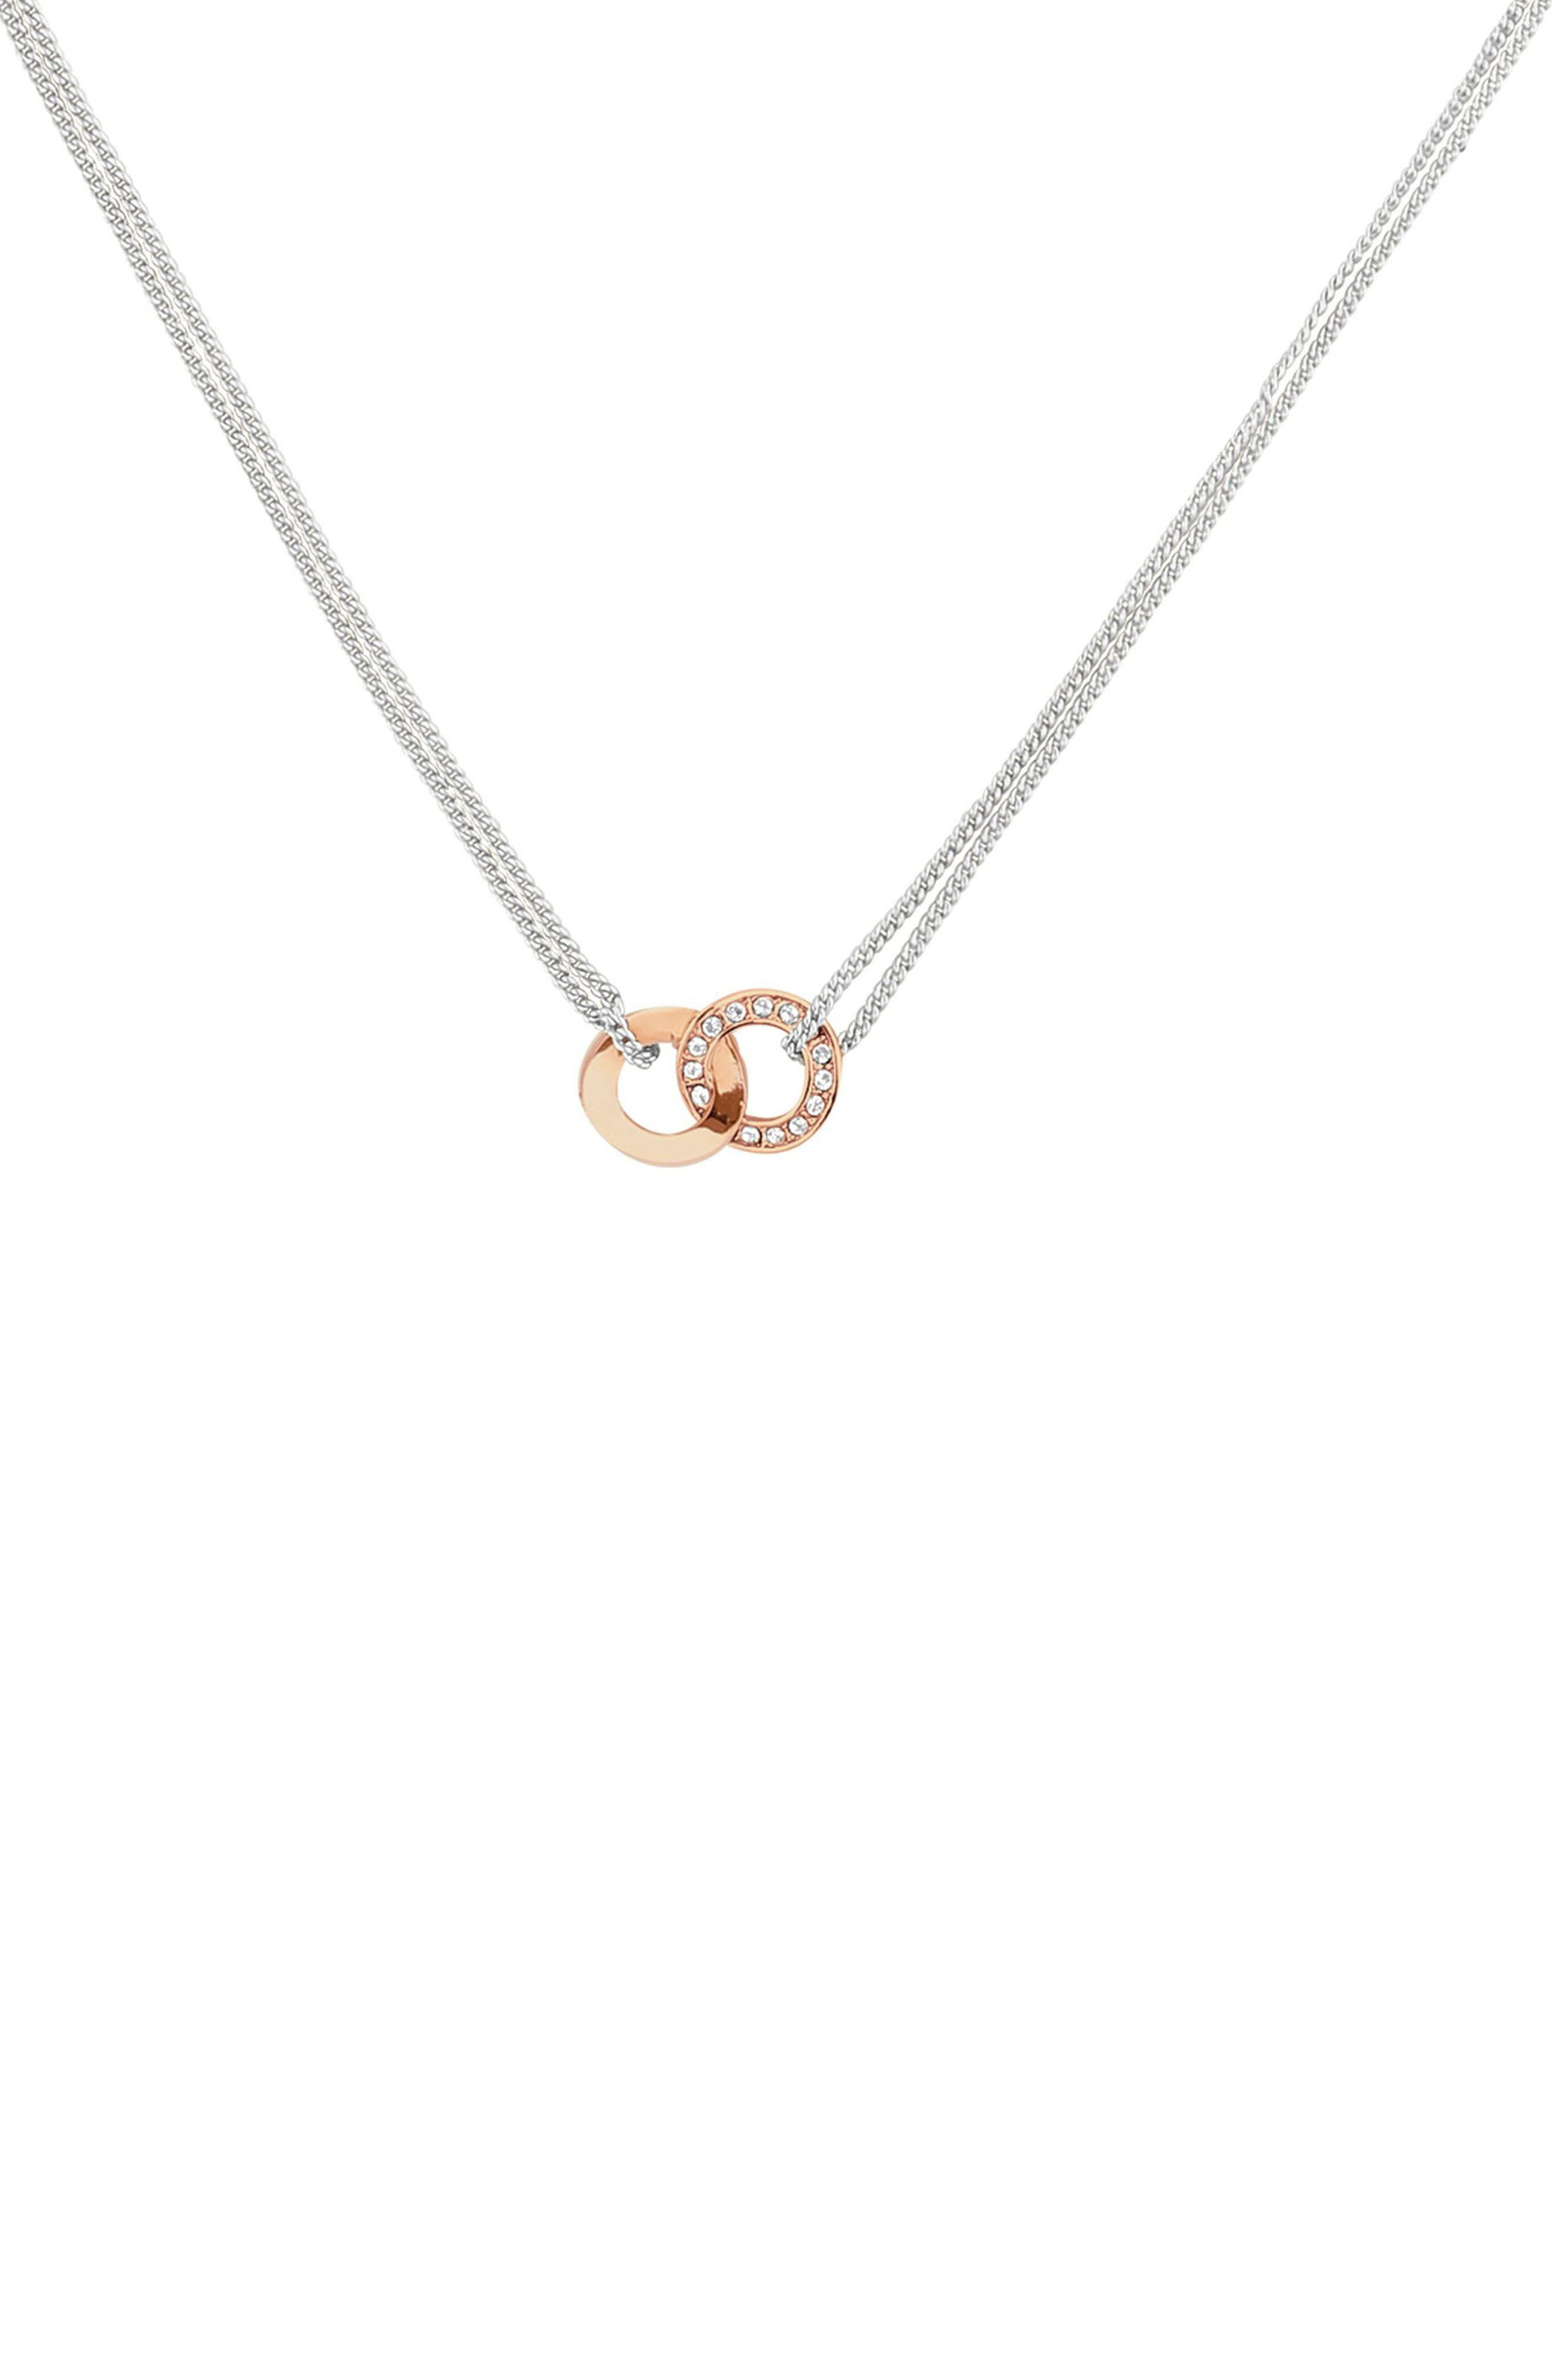 Interlocking Ring Dual Strand Necklace,                             Main thumbnail 1, color,                             SILVER/ ROSE GOLD